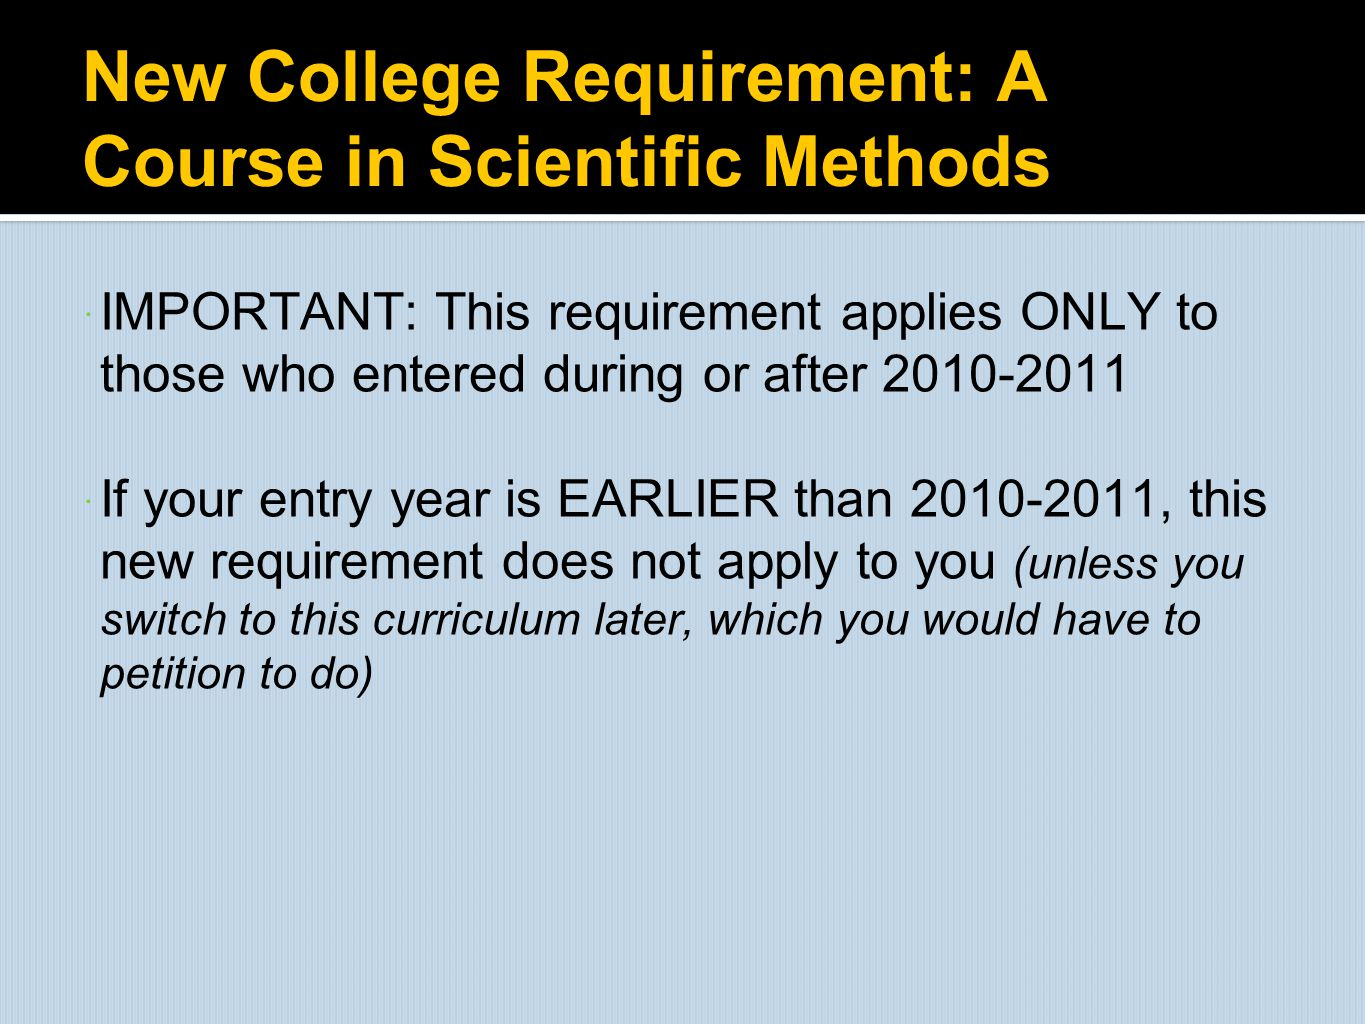 New College Requirement: A Course in Scientific Methods